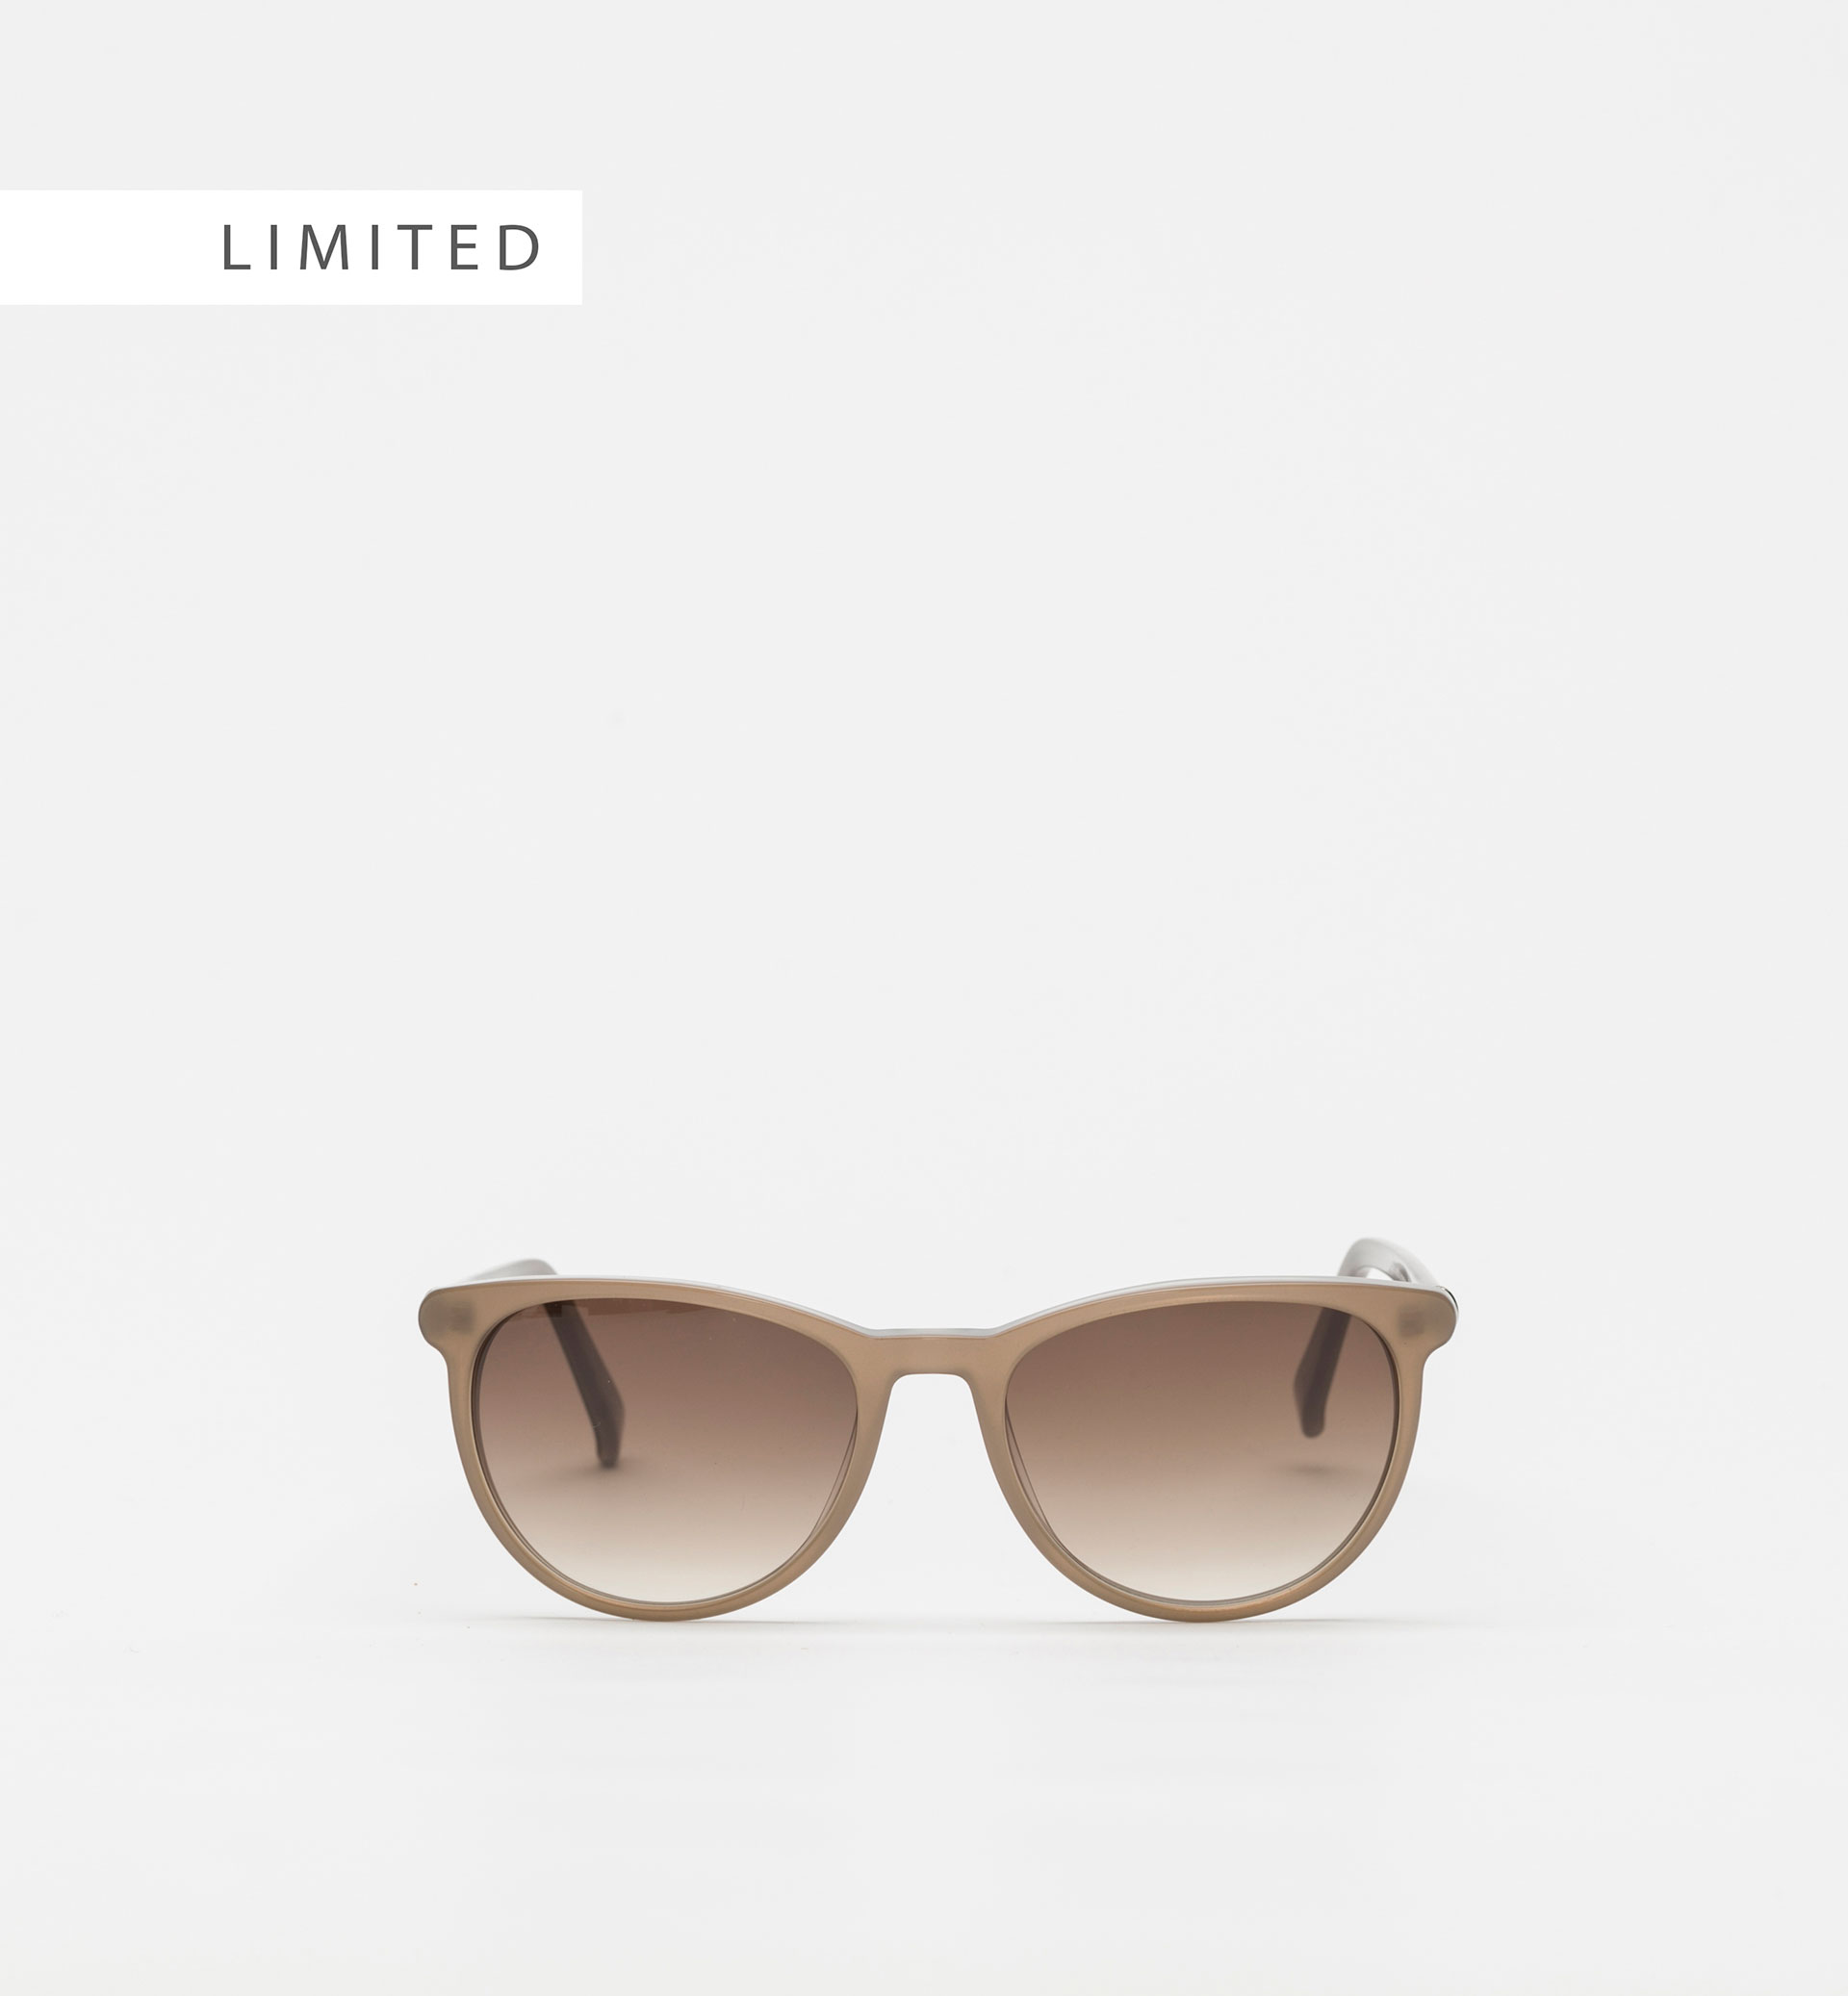 LIMITED EDITION SUNGLASSES